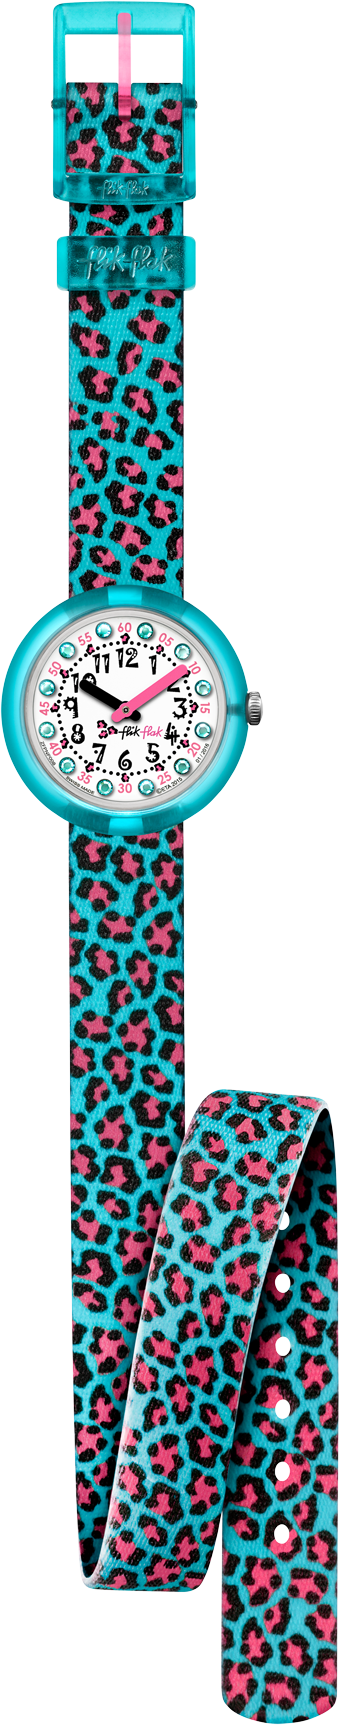 Swatch® United Kingdom - Flik Flak Power Time TURQUOISE JUBATUS FPNP008 7a67985c3e9